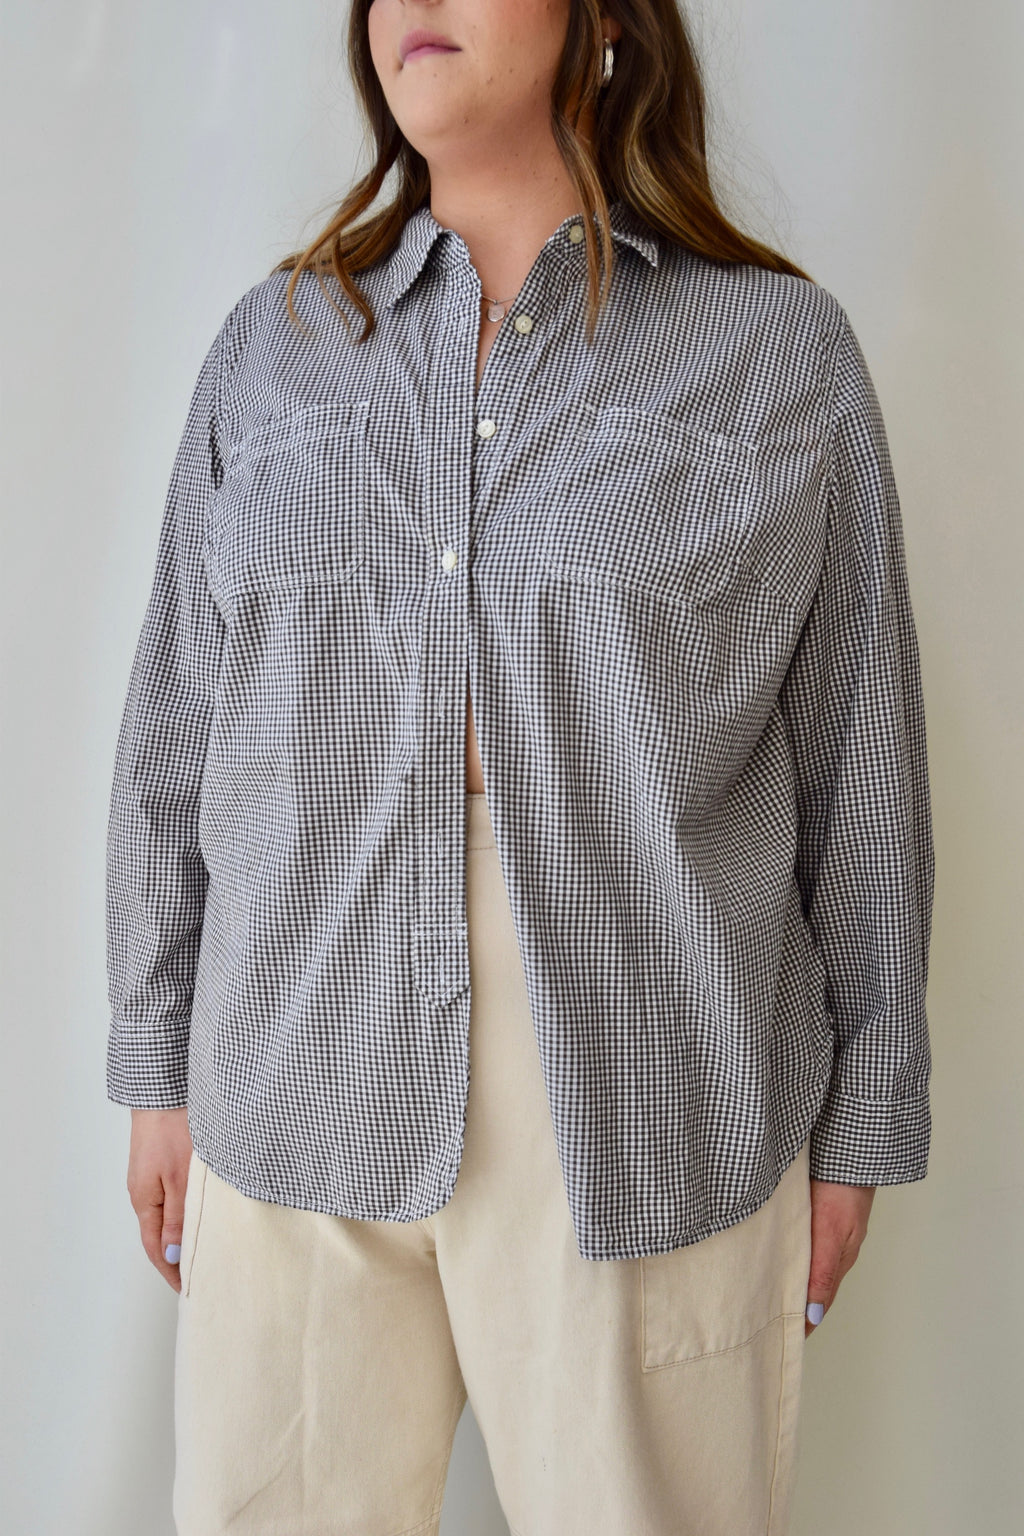 Ralph Lauren Cotton Gingham Top